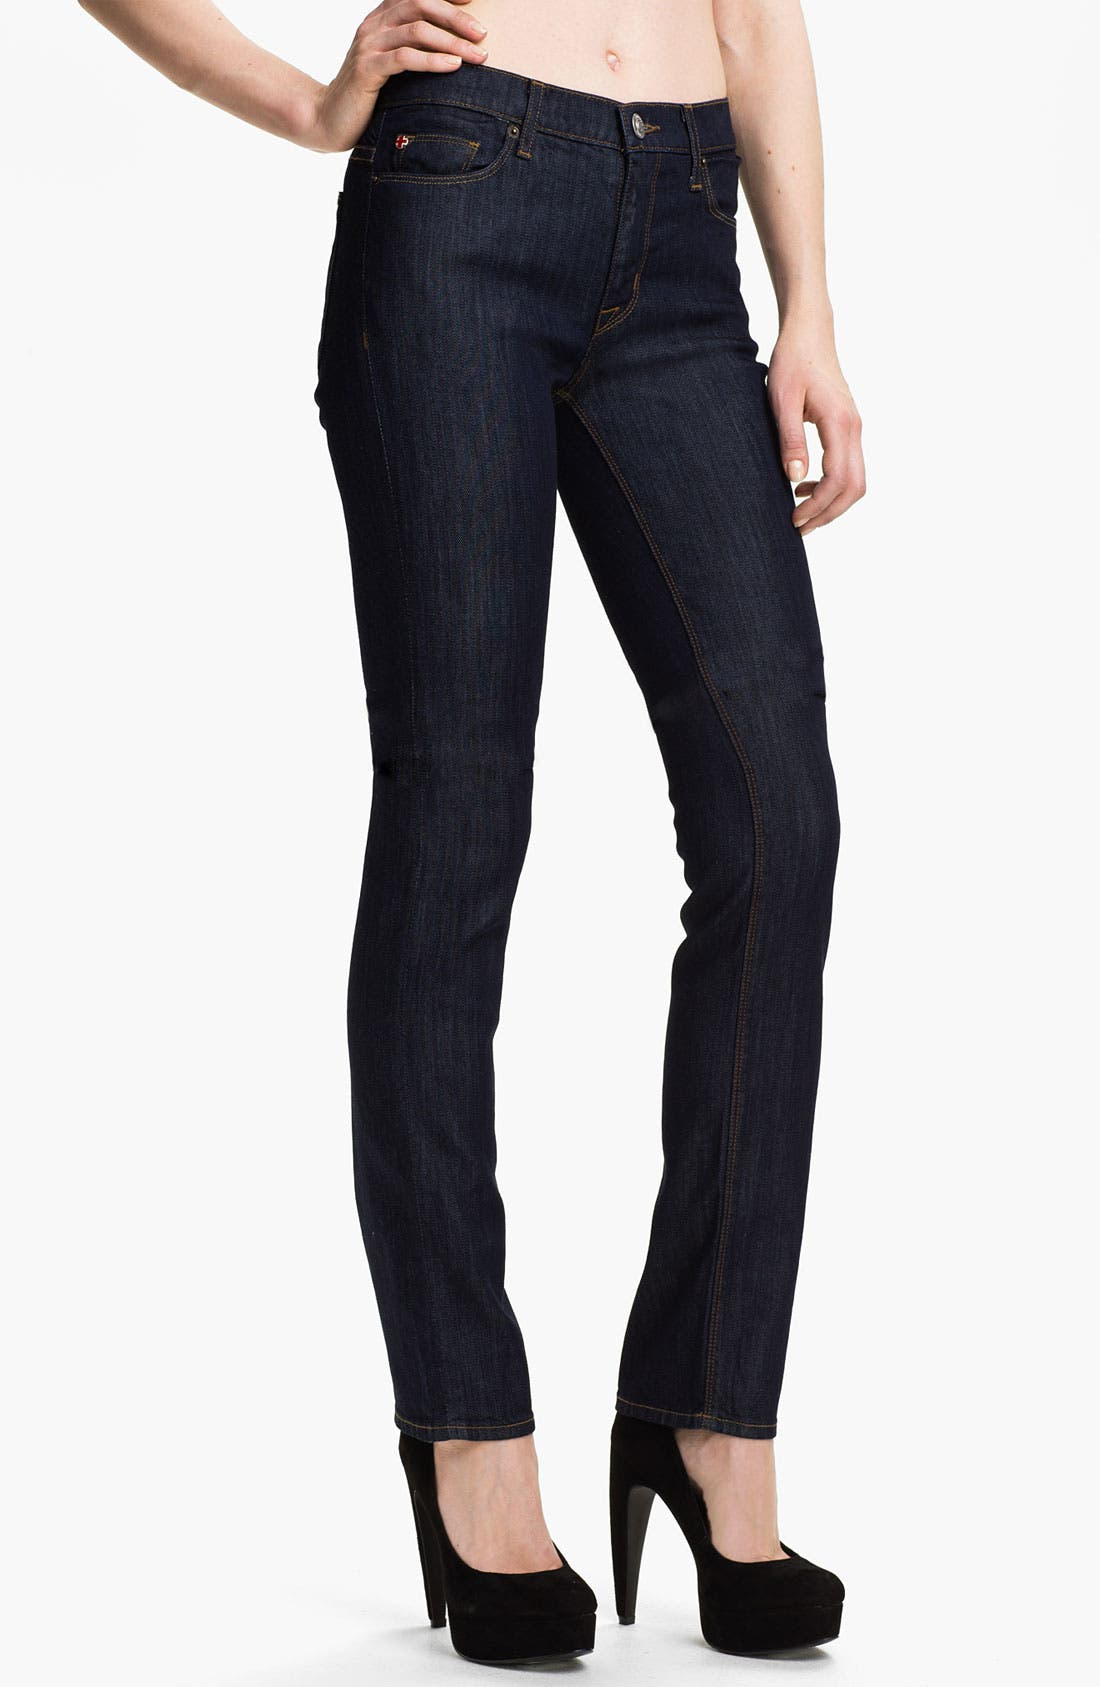 Alternate Image 1 Selected - Hudson Jeans 'Tilda' Straight Leg Stretch Jeans (Finch)